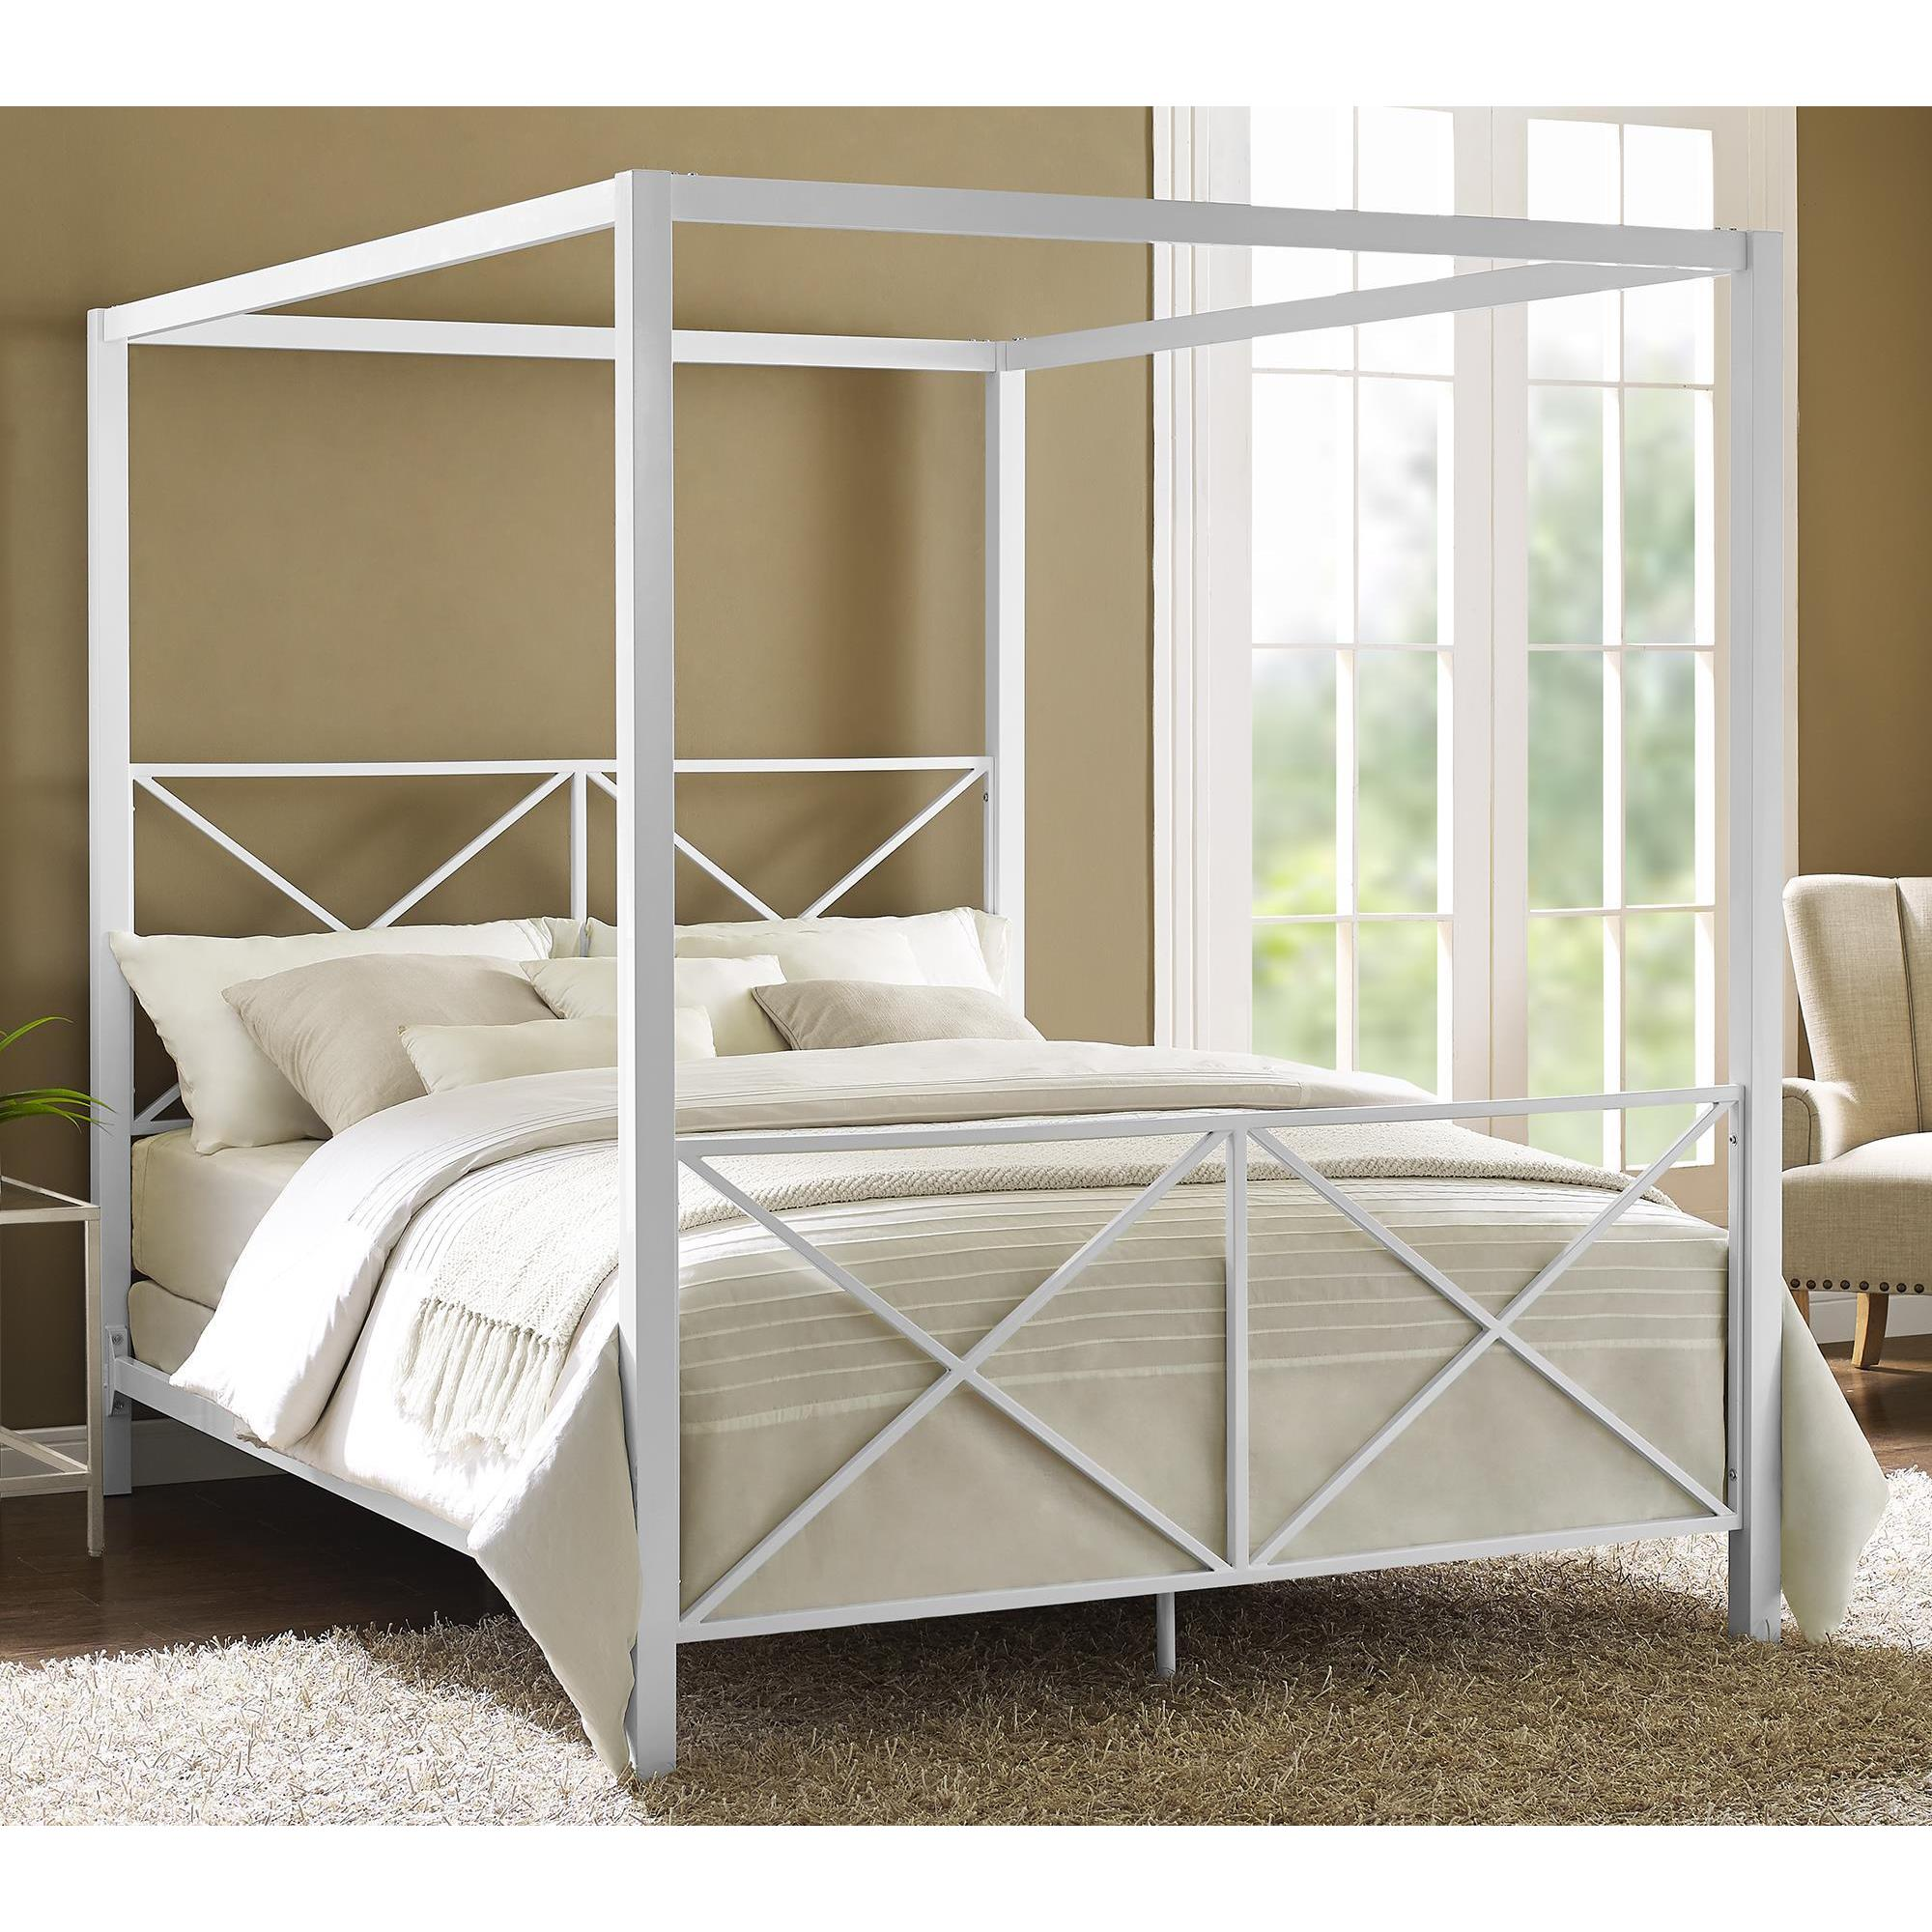 Avenue Greene DHP Rosedale White Canopy Queen Bed (Queen ...